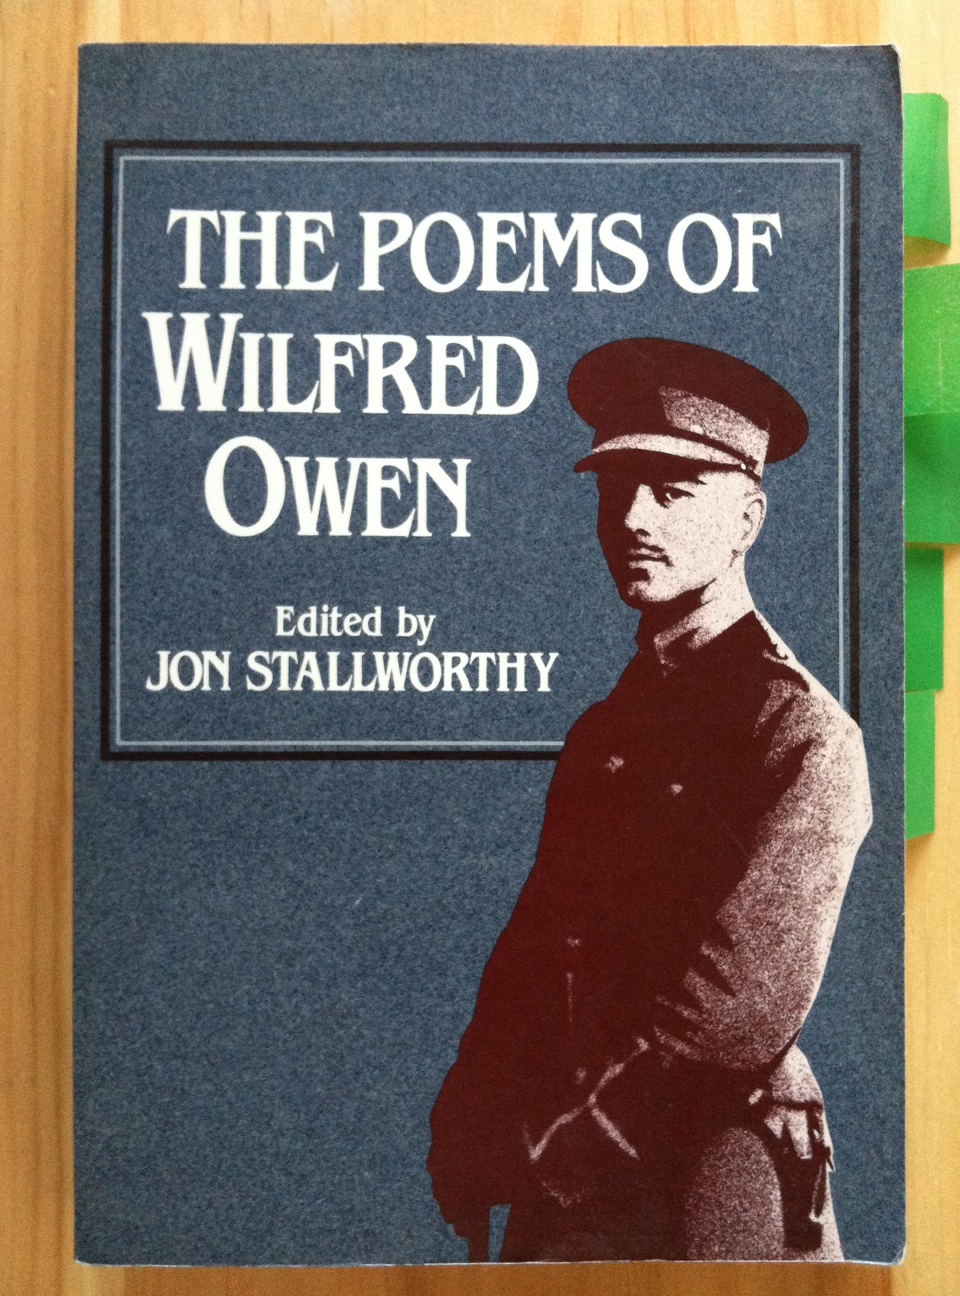 an analysis of wilfred owens disabled Disabled is a war poem by wilfred owen written in 1917 it expresses the tormented thoughts and recollections of a teenaged soldier in world war i who has lost his.